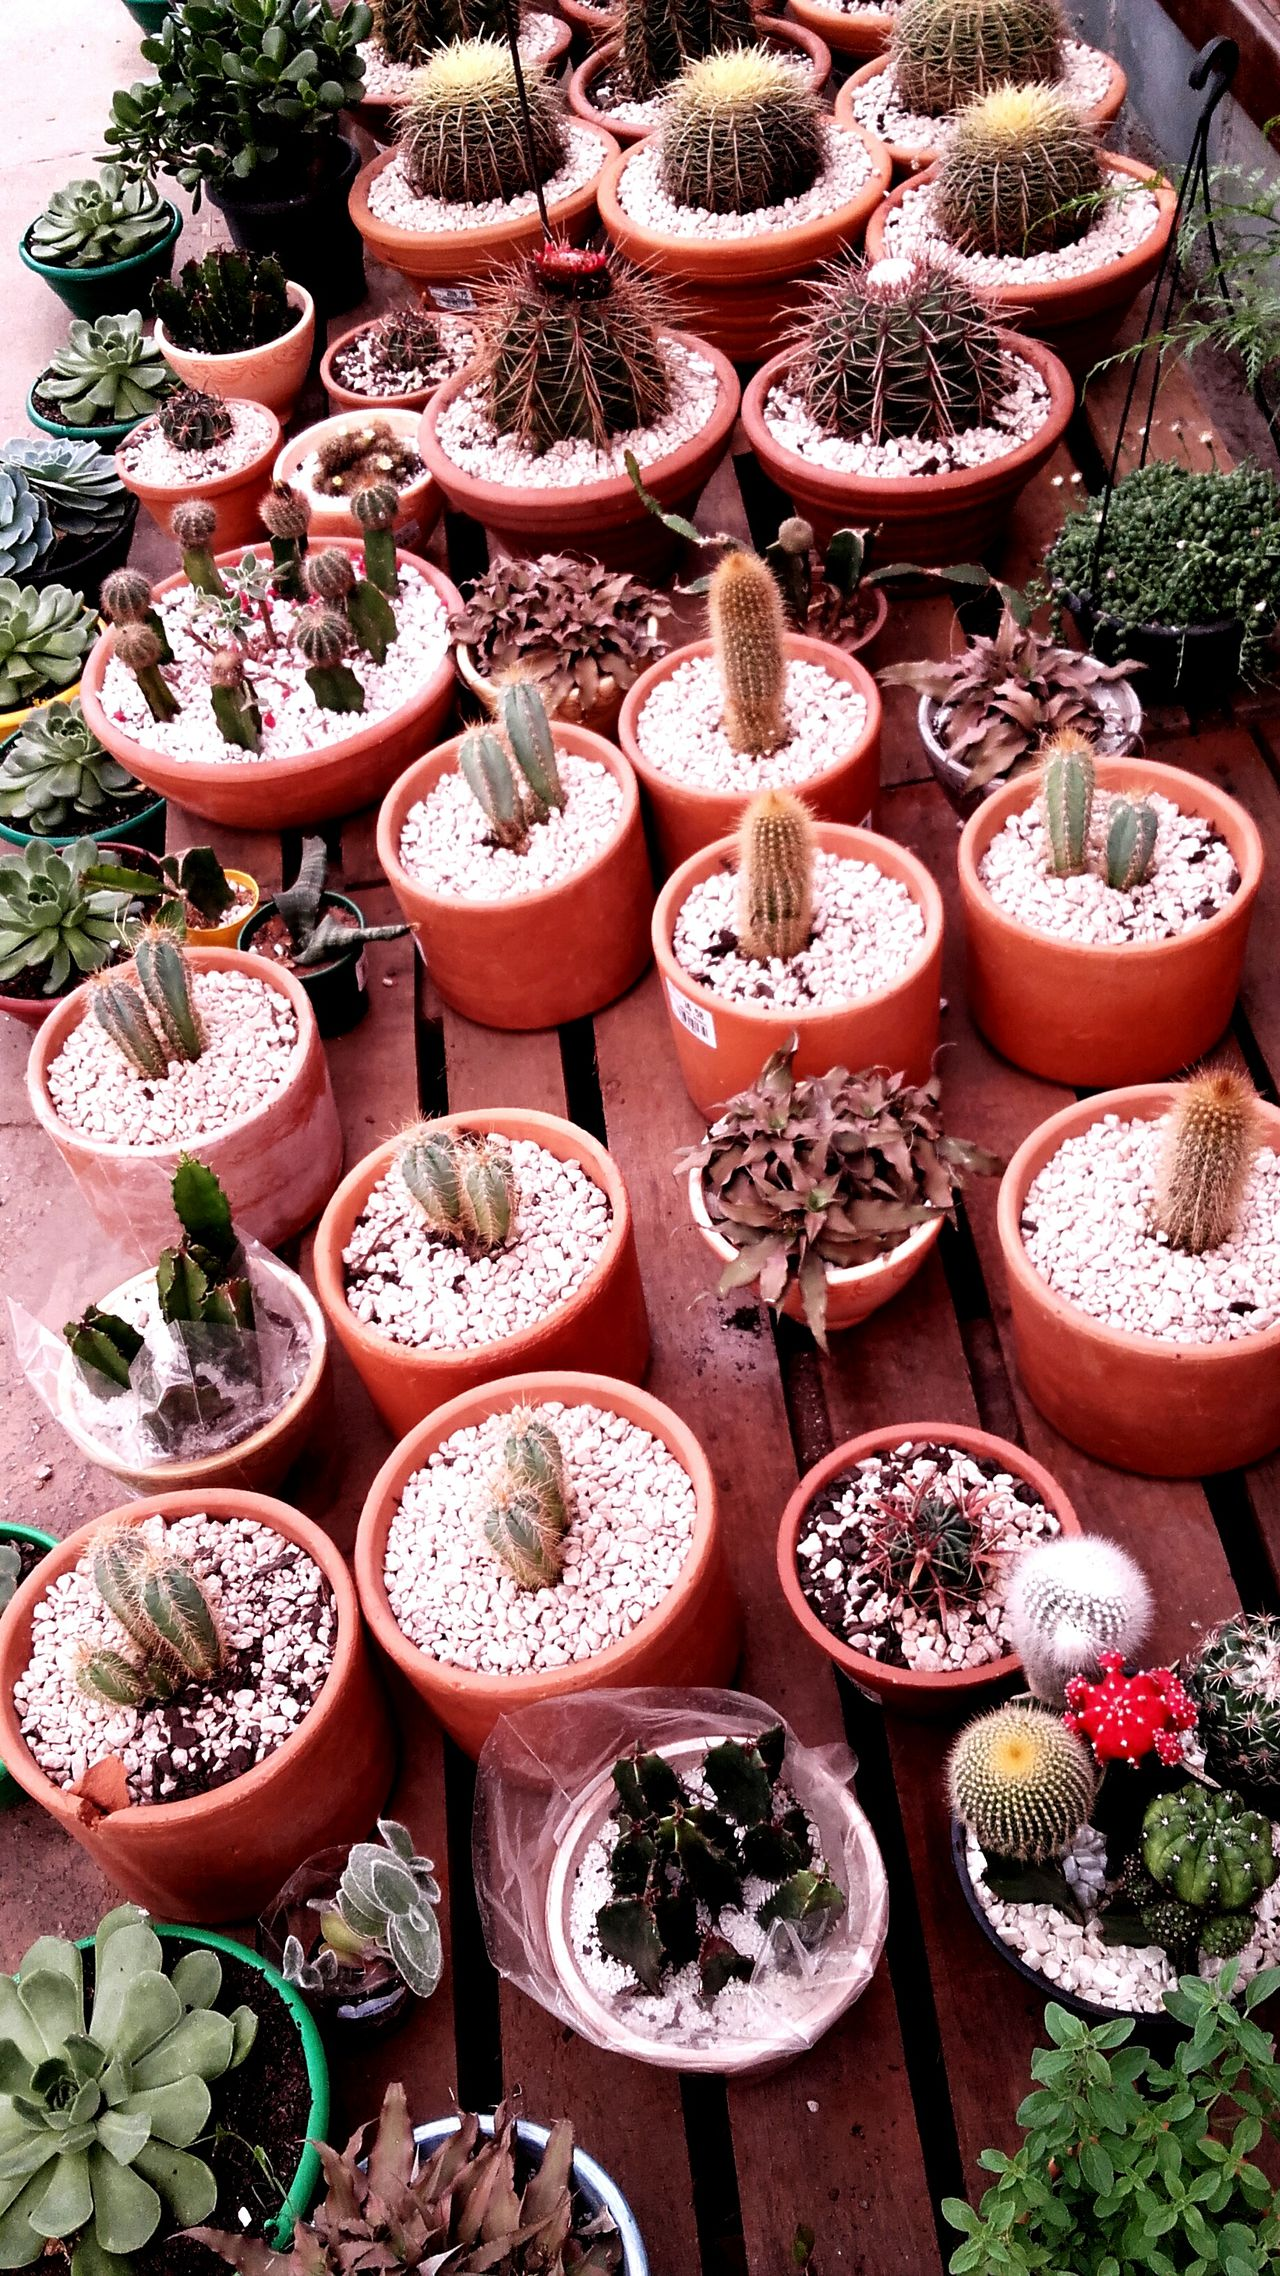 High Angle View Nature For Sale Cactusflower Green Plant Outside Plants Groups Of Objects Large Group Of Objects Choice No People Outdoors Freshness Market Day